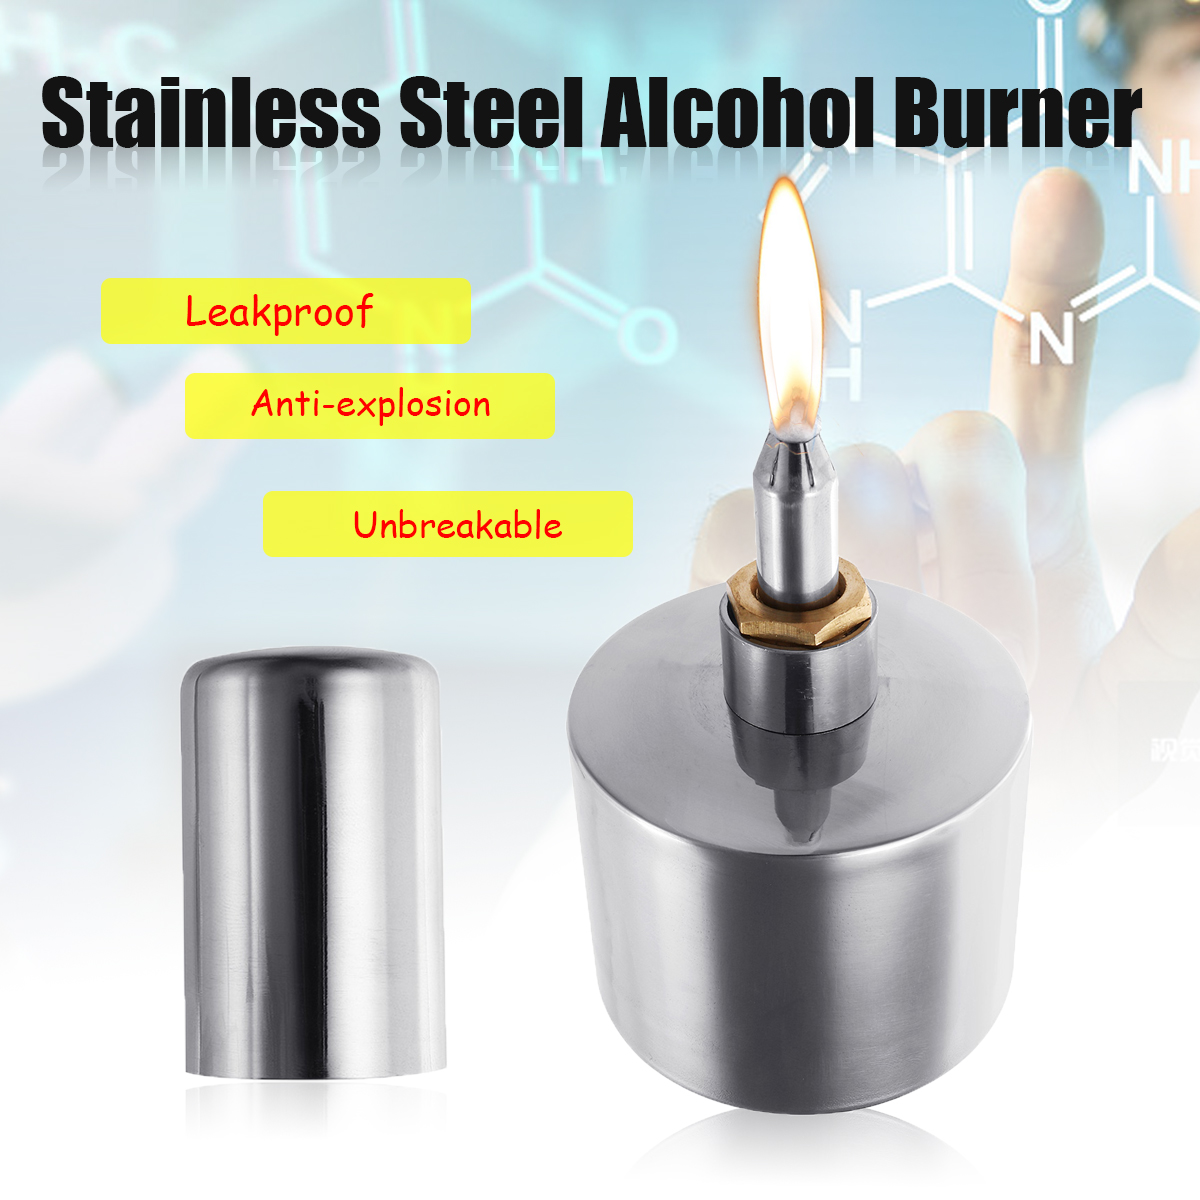 200ml Anti-explosion Leak Proof Safe Stainless Steel Lab Alcohol Burner Lamp